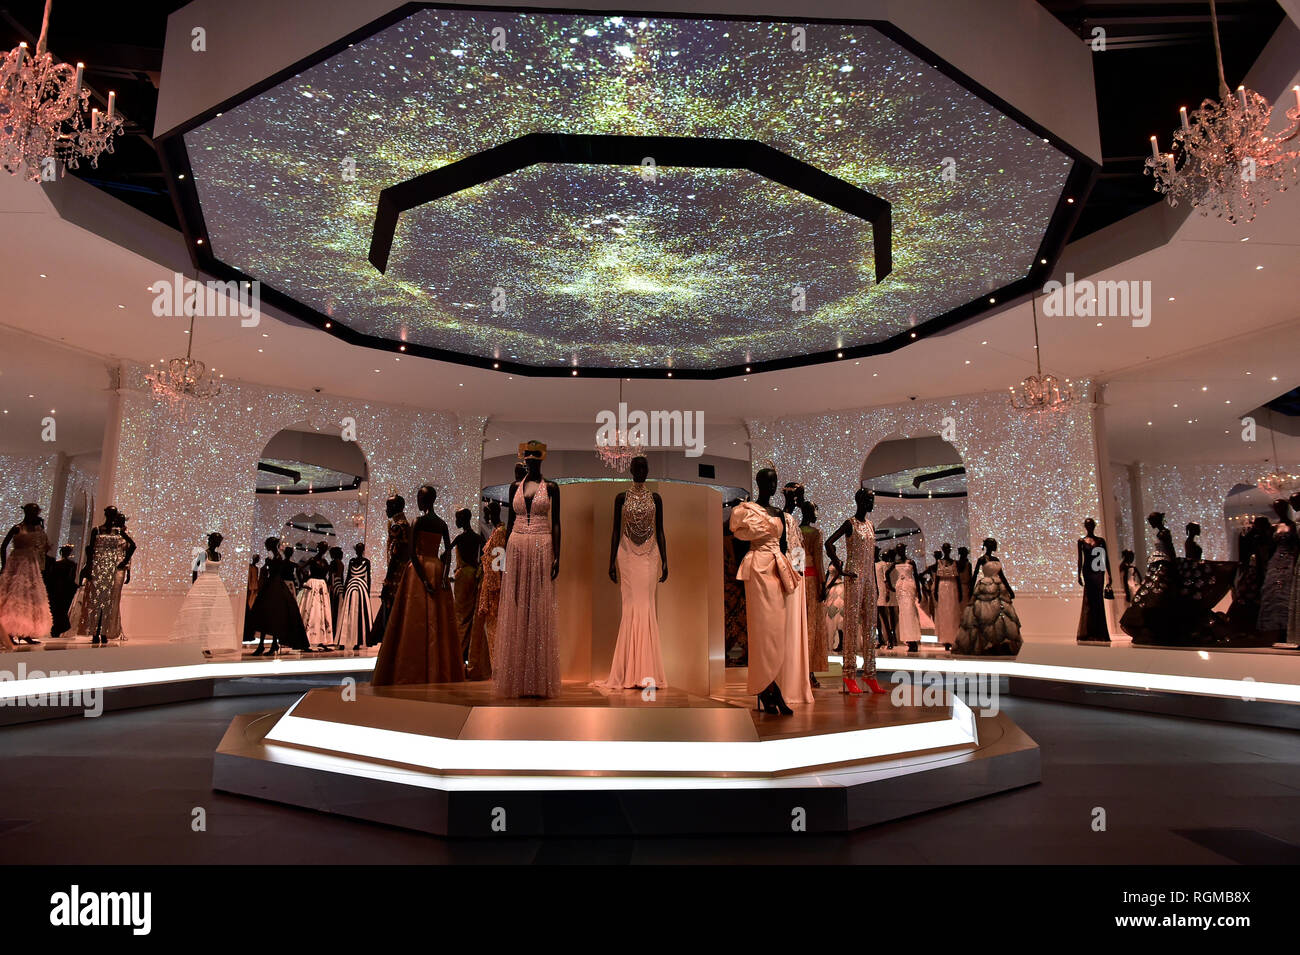 73e5496955b House Of Dior Stock Photos   House Of Dior Stock Images - Page 3 - Alamy